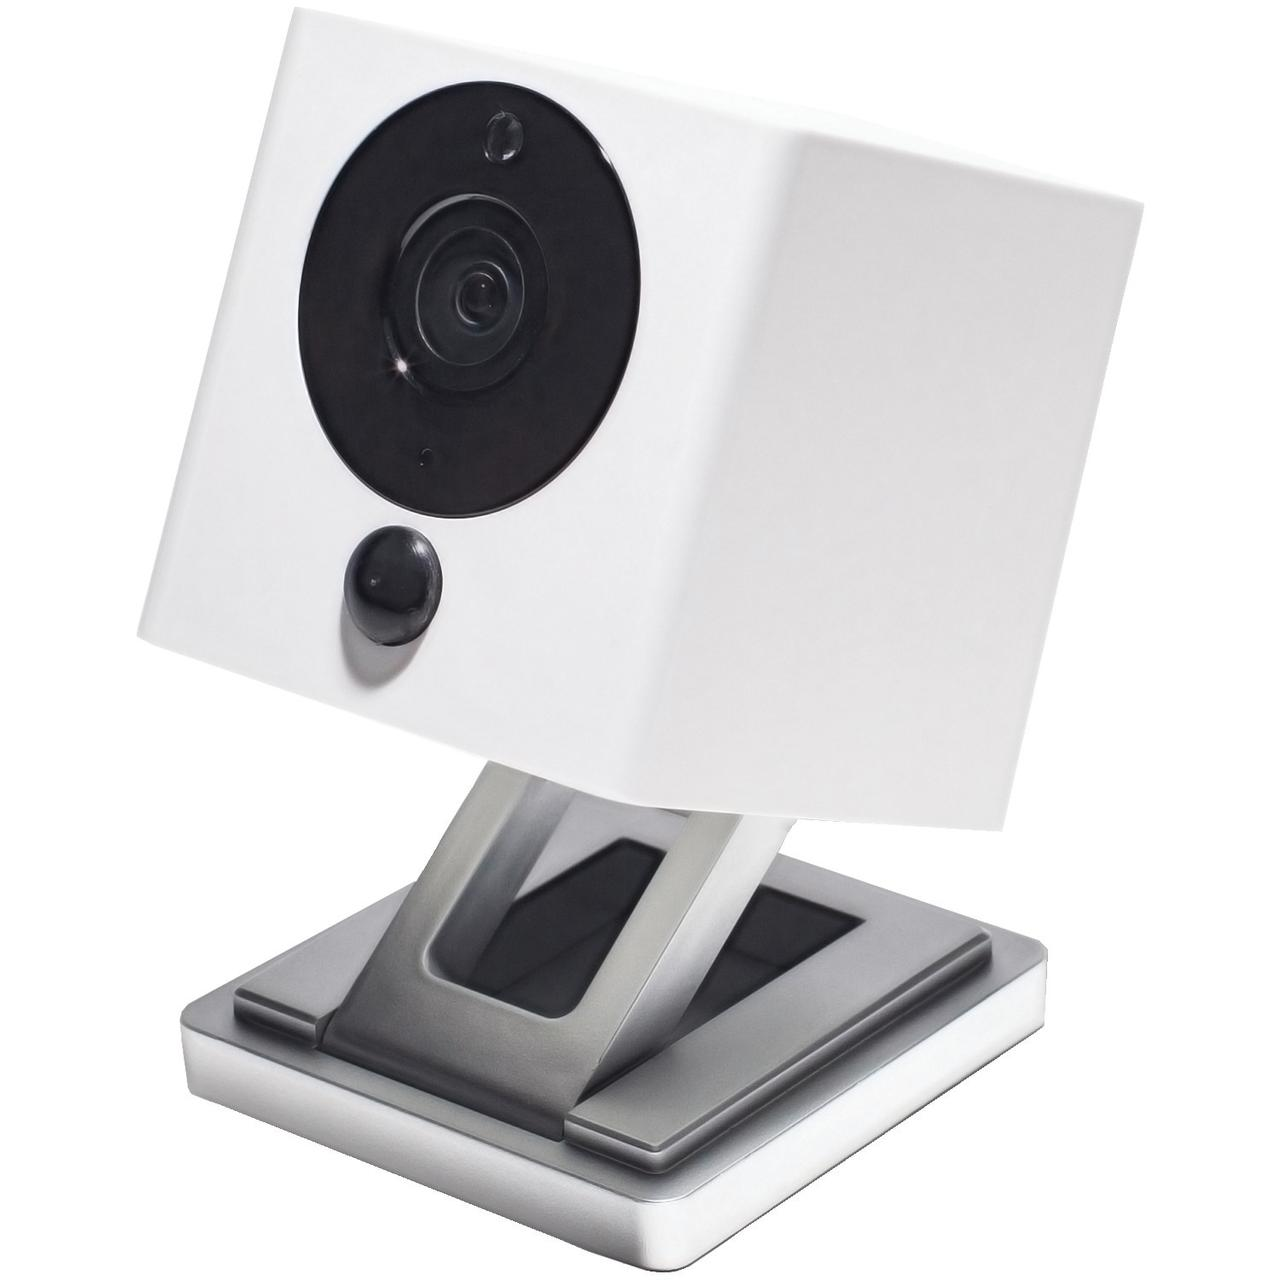 iSmartAlarm iSC5 Spot HD Wi-Fi Smart Home Video Camera